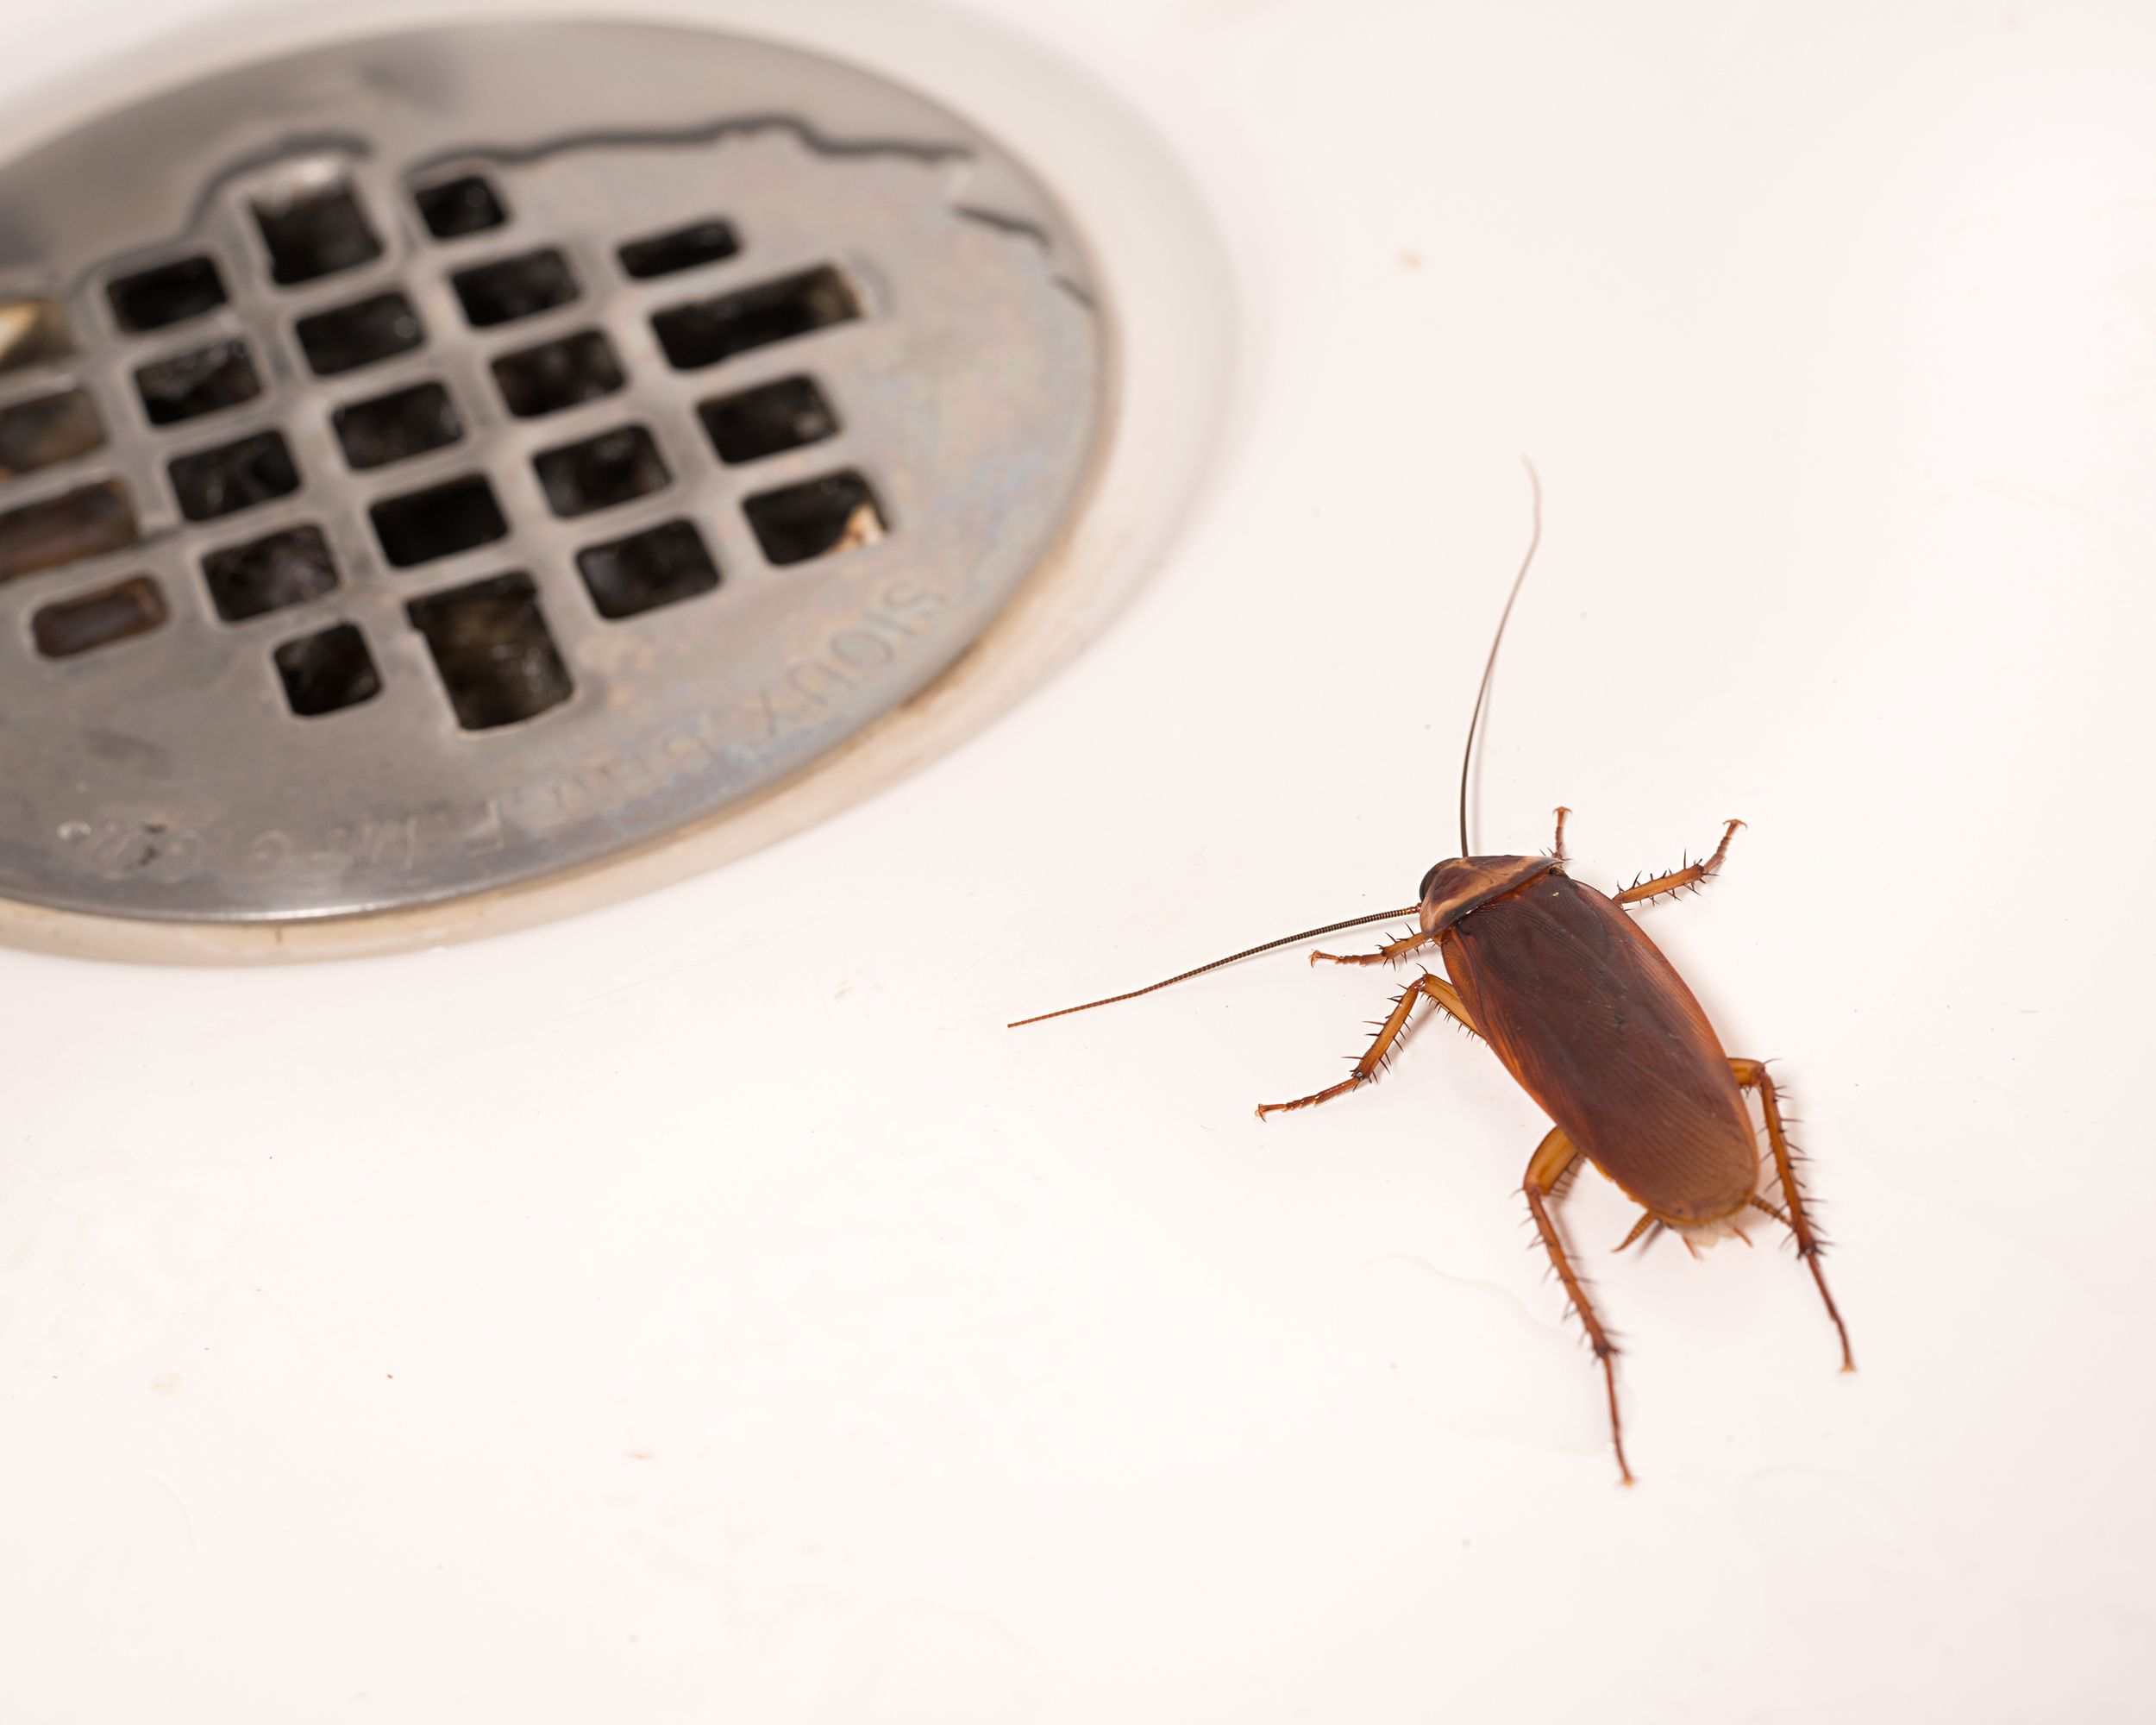 American Cockroaches are the largest native cockroach species. Reddish brown in color, they're typically found in dark, moist areas like drains, sewers, trash rooms, gutters, etc.